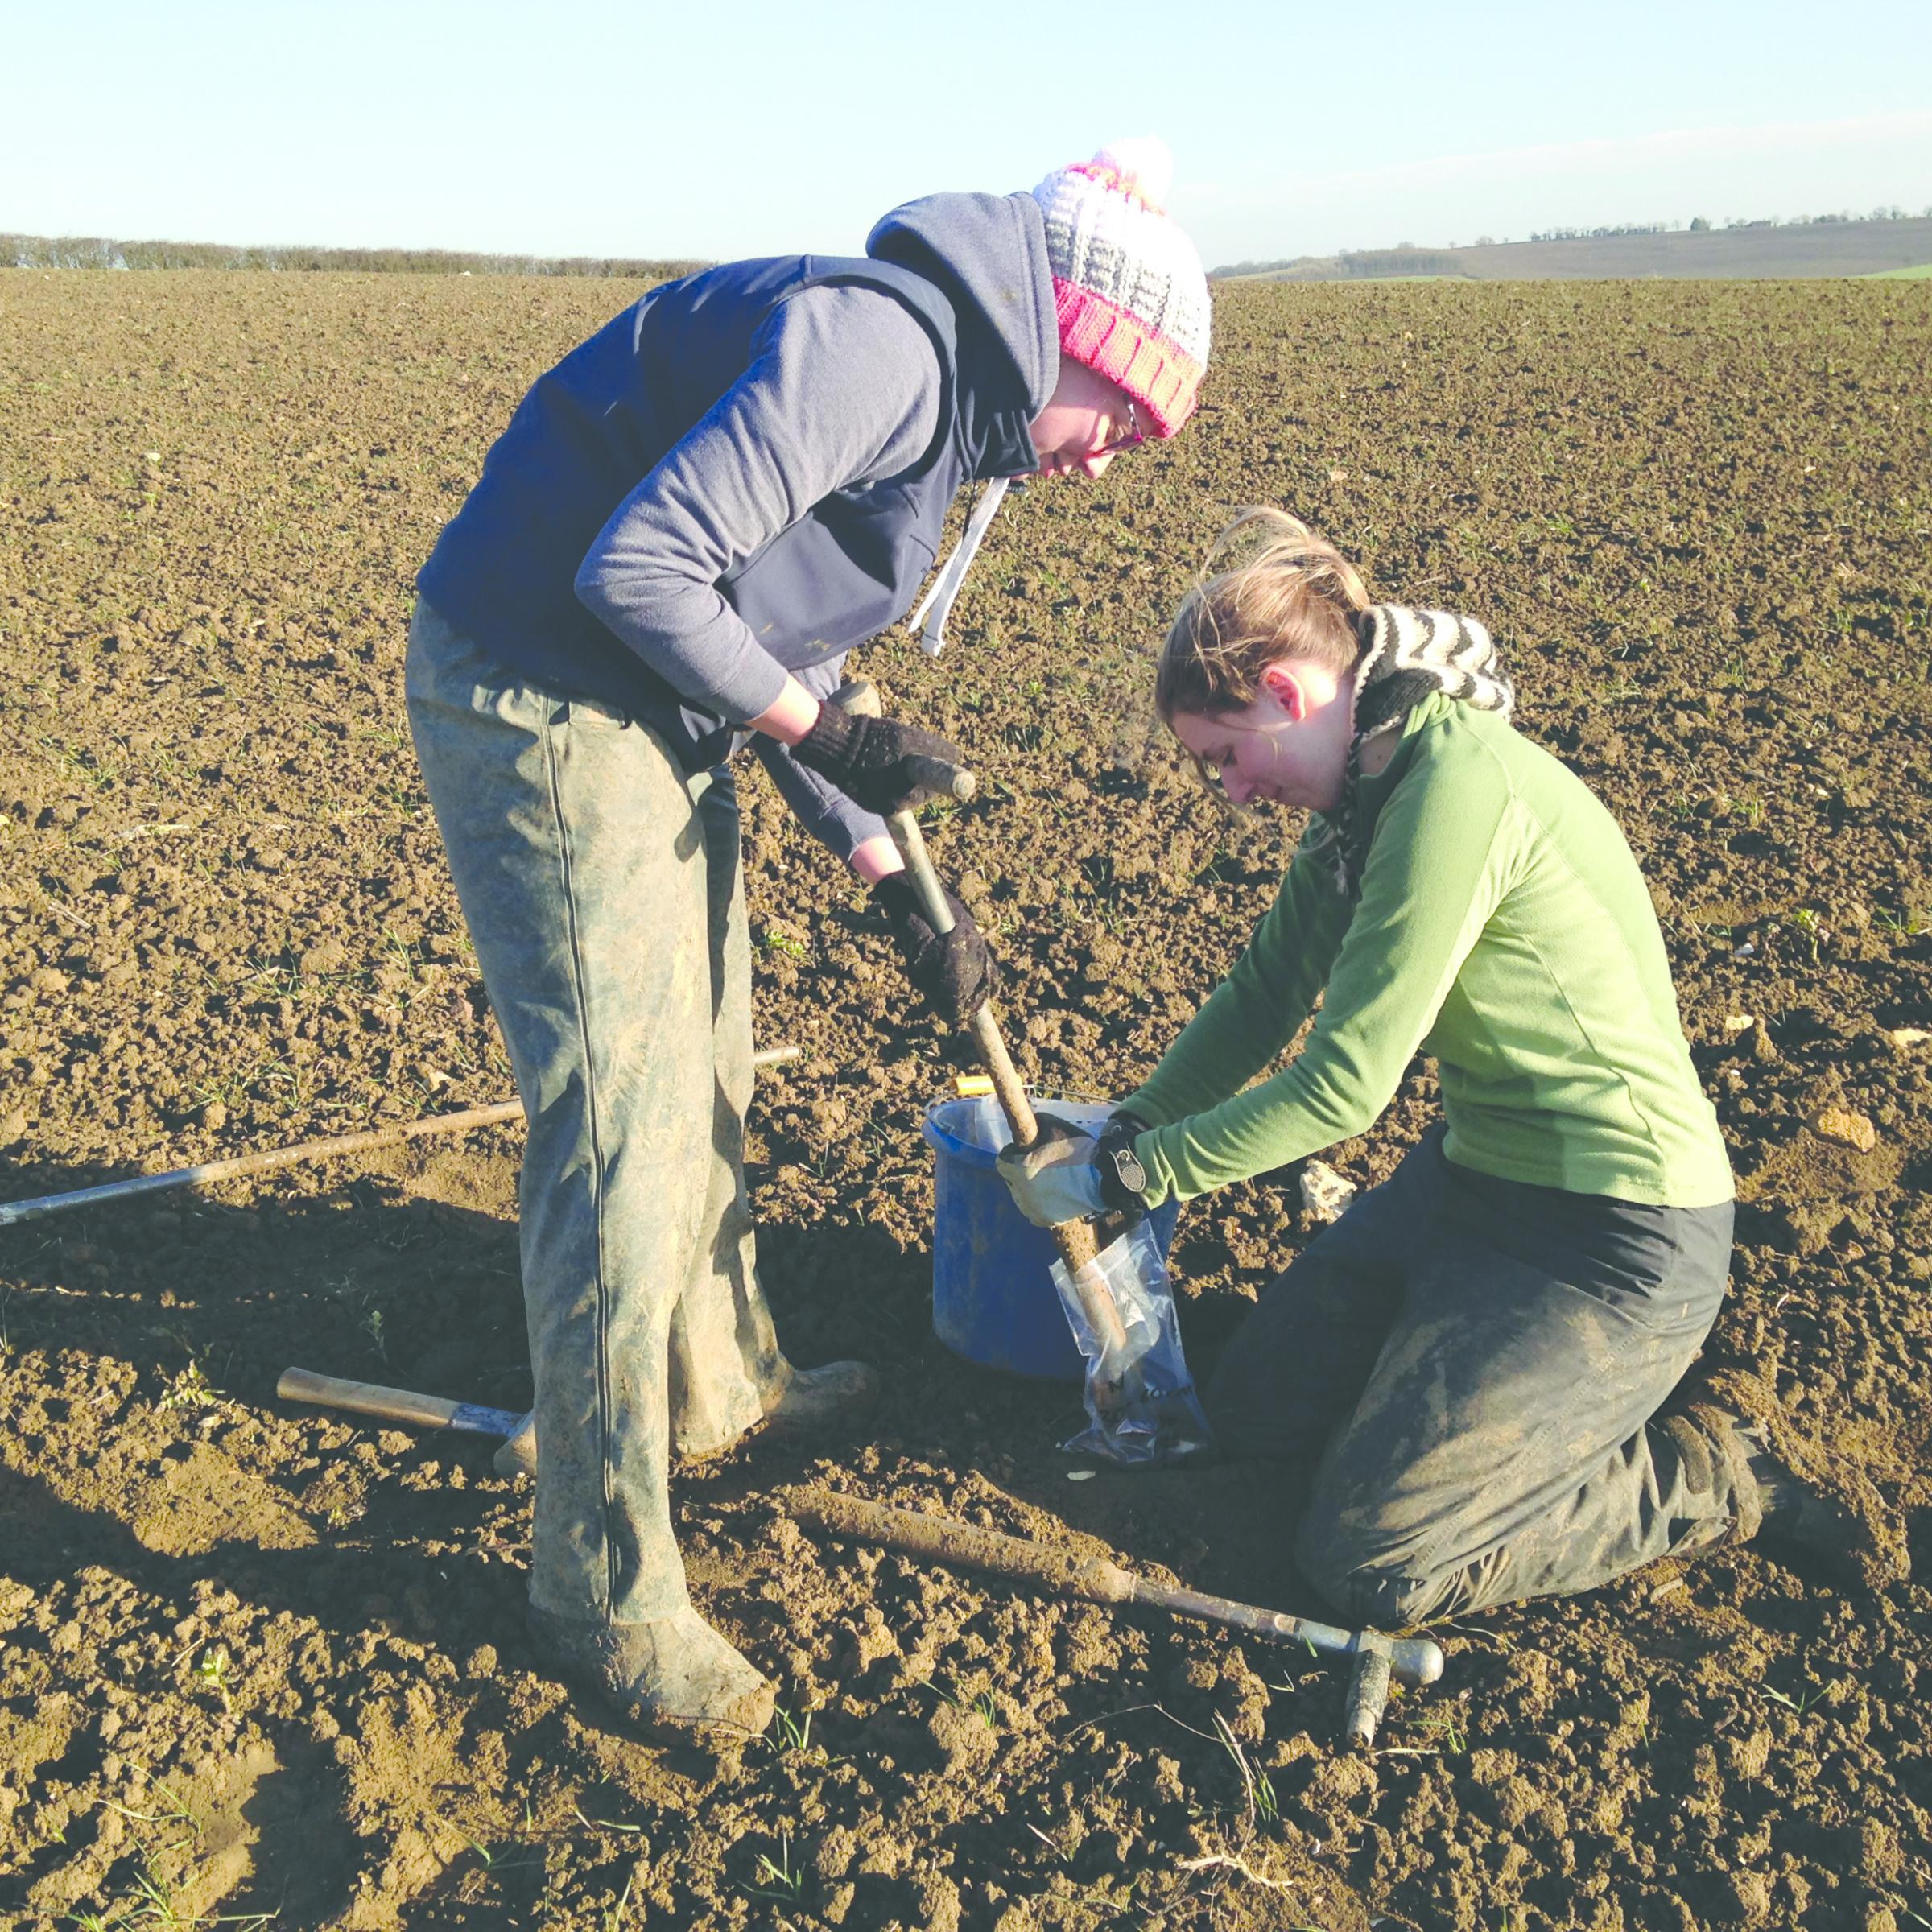 GWCT team members sample soil. Image provided by GWCT